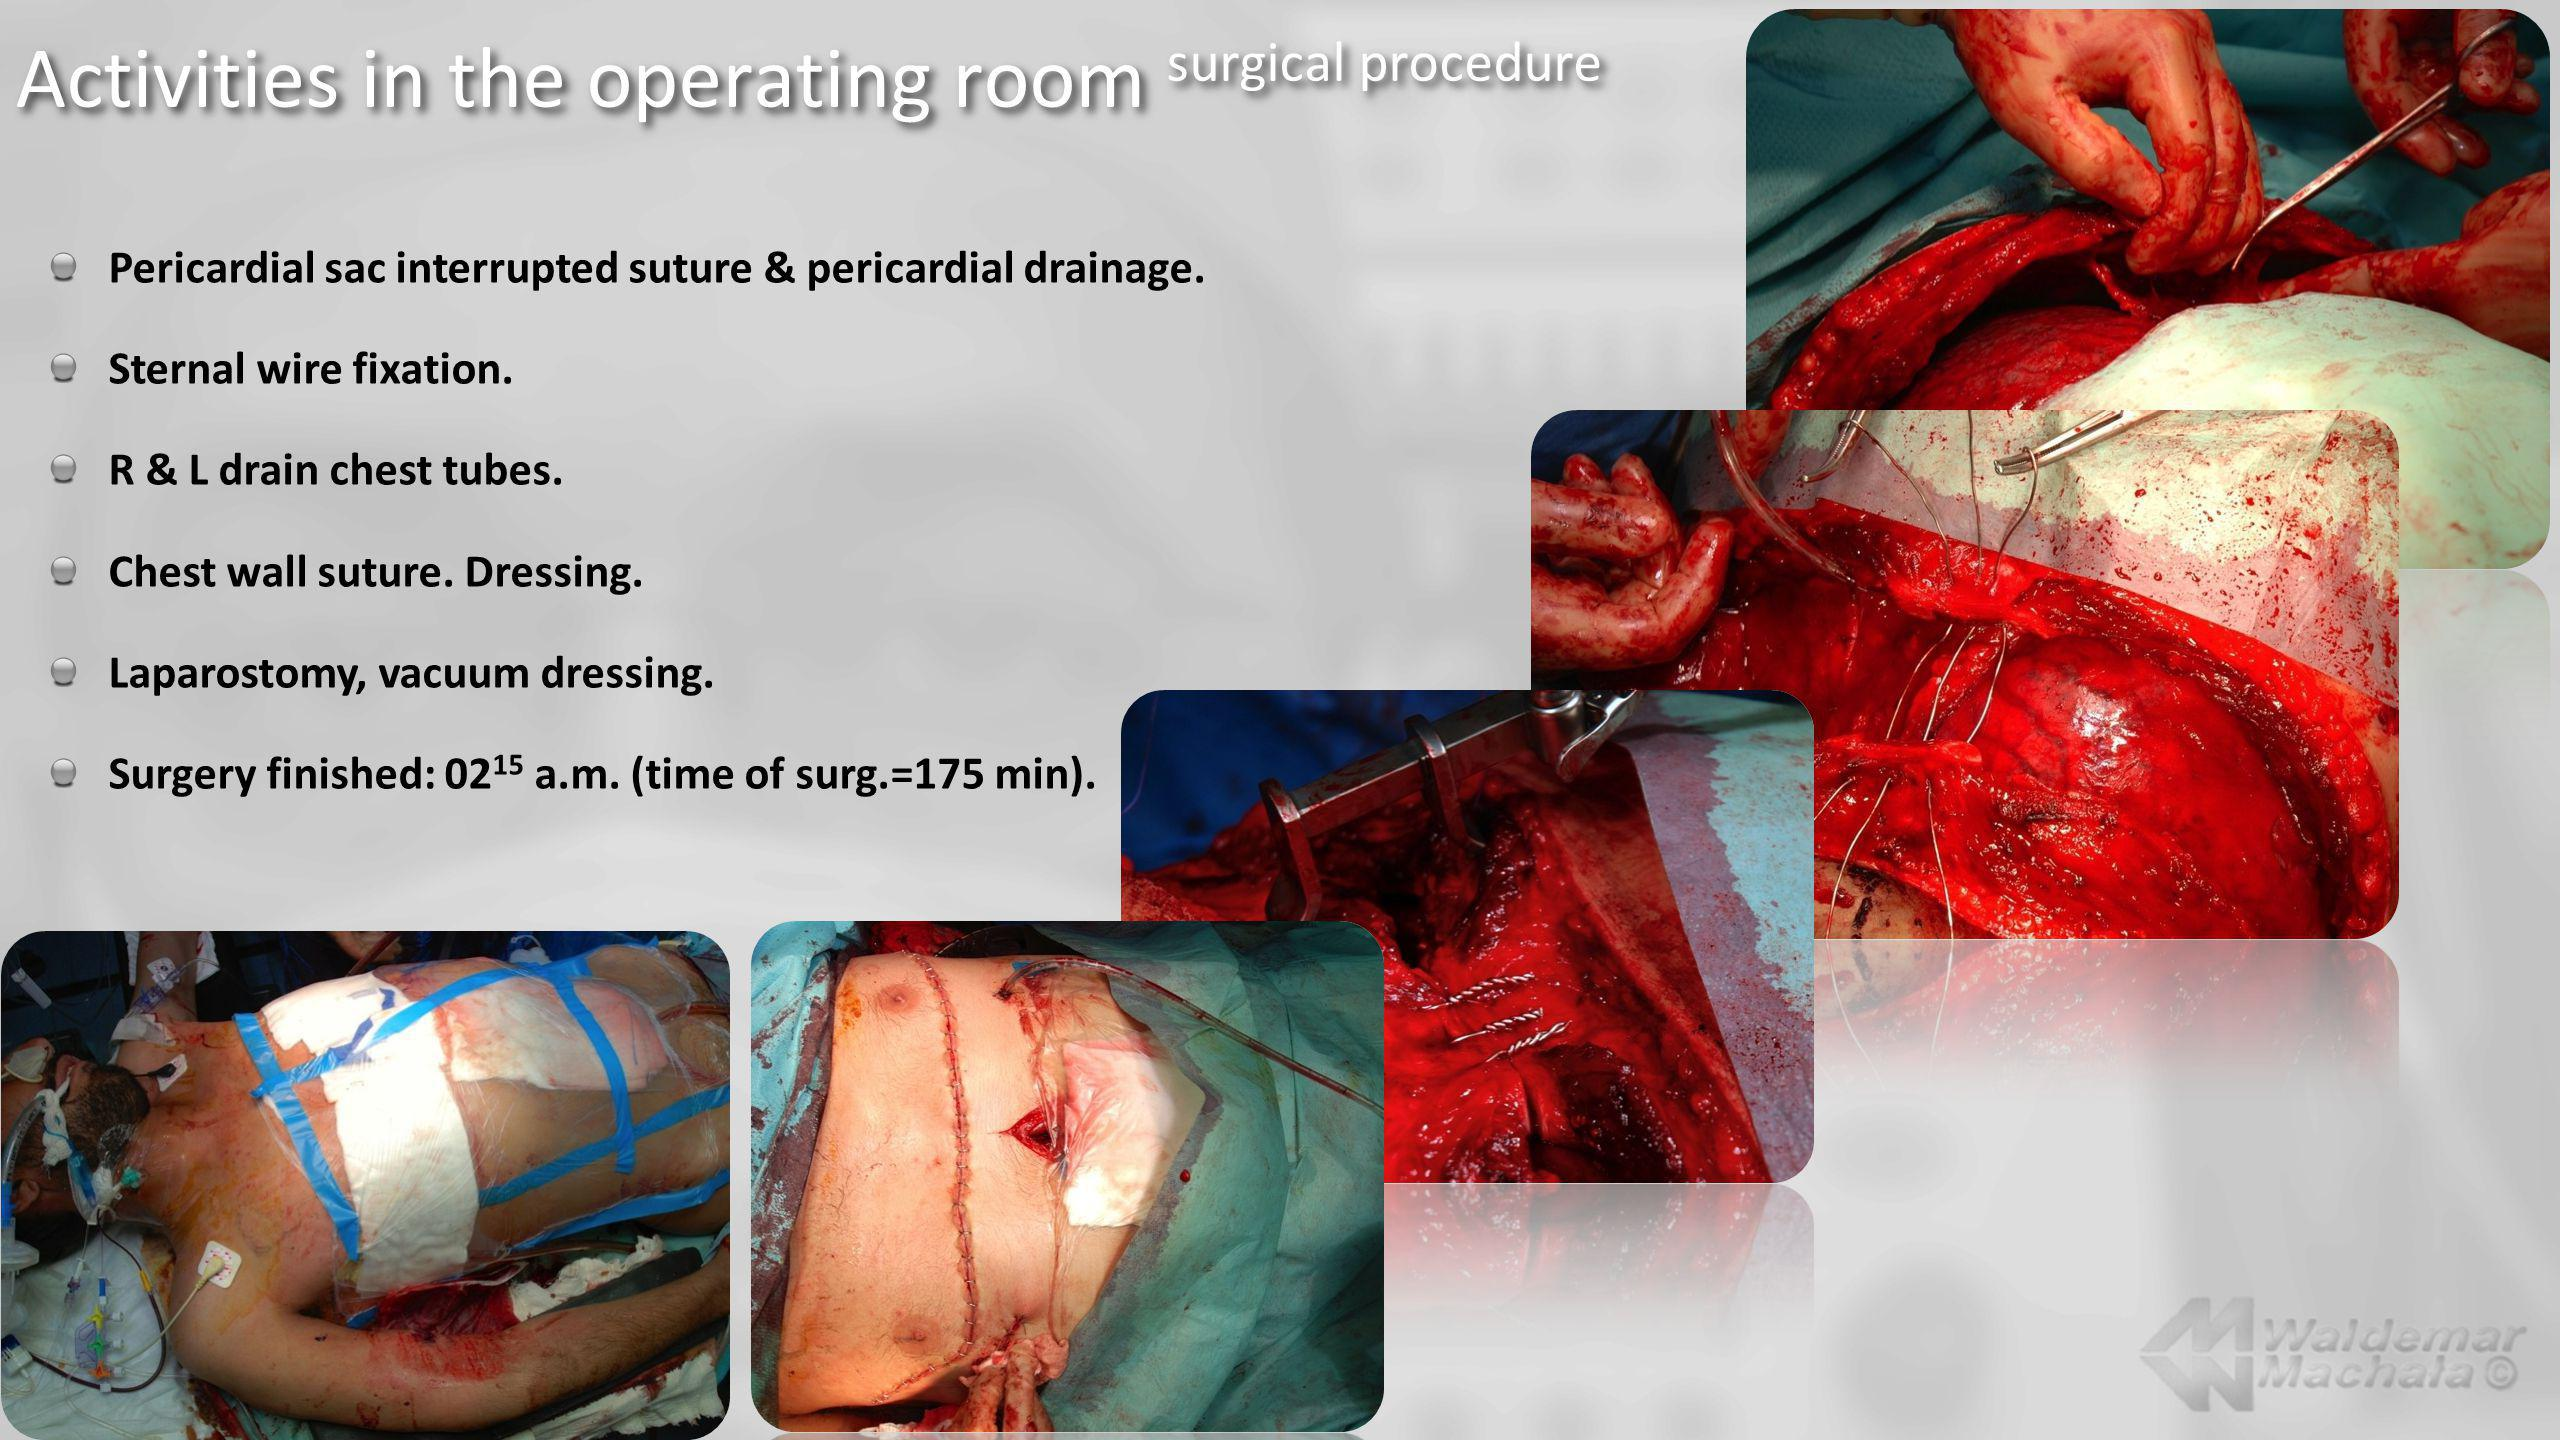 Activities in the operating room surgical procedure